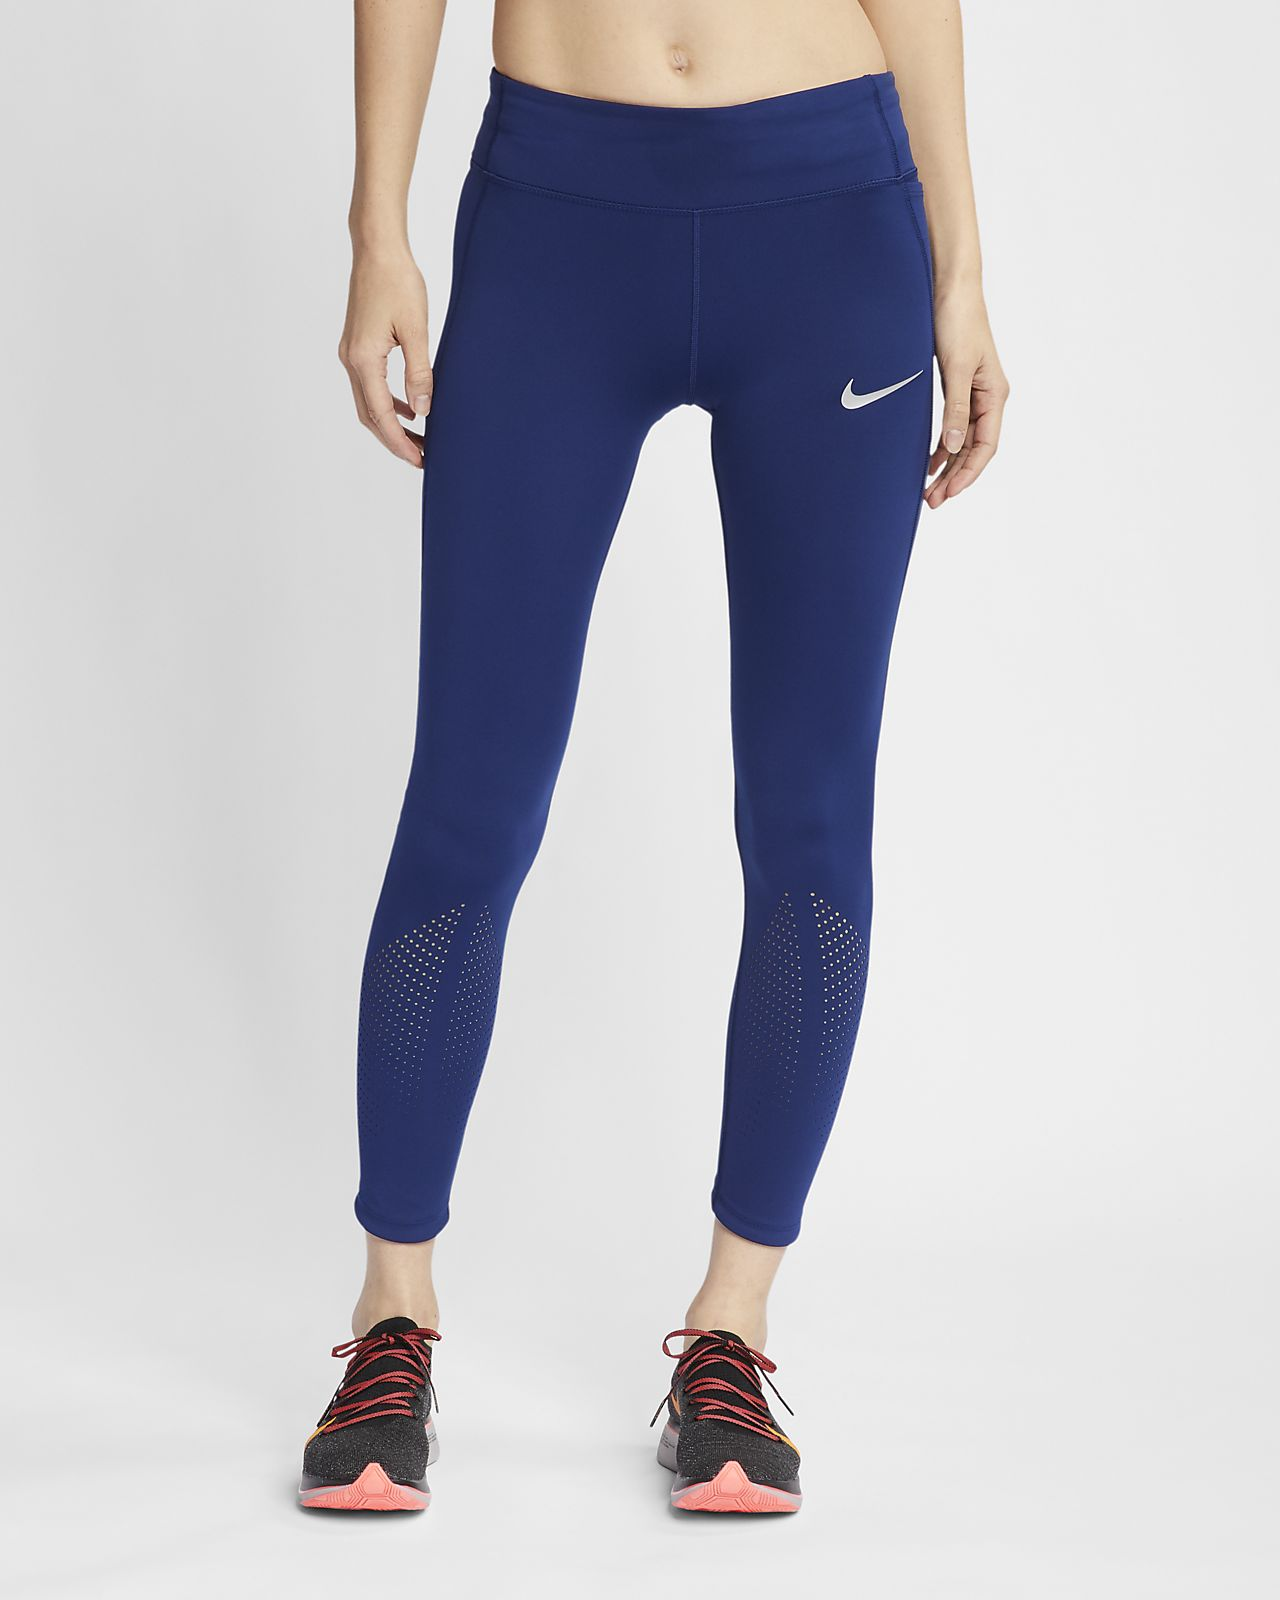 Nike Epic Lux Women's Tights